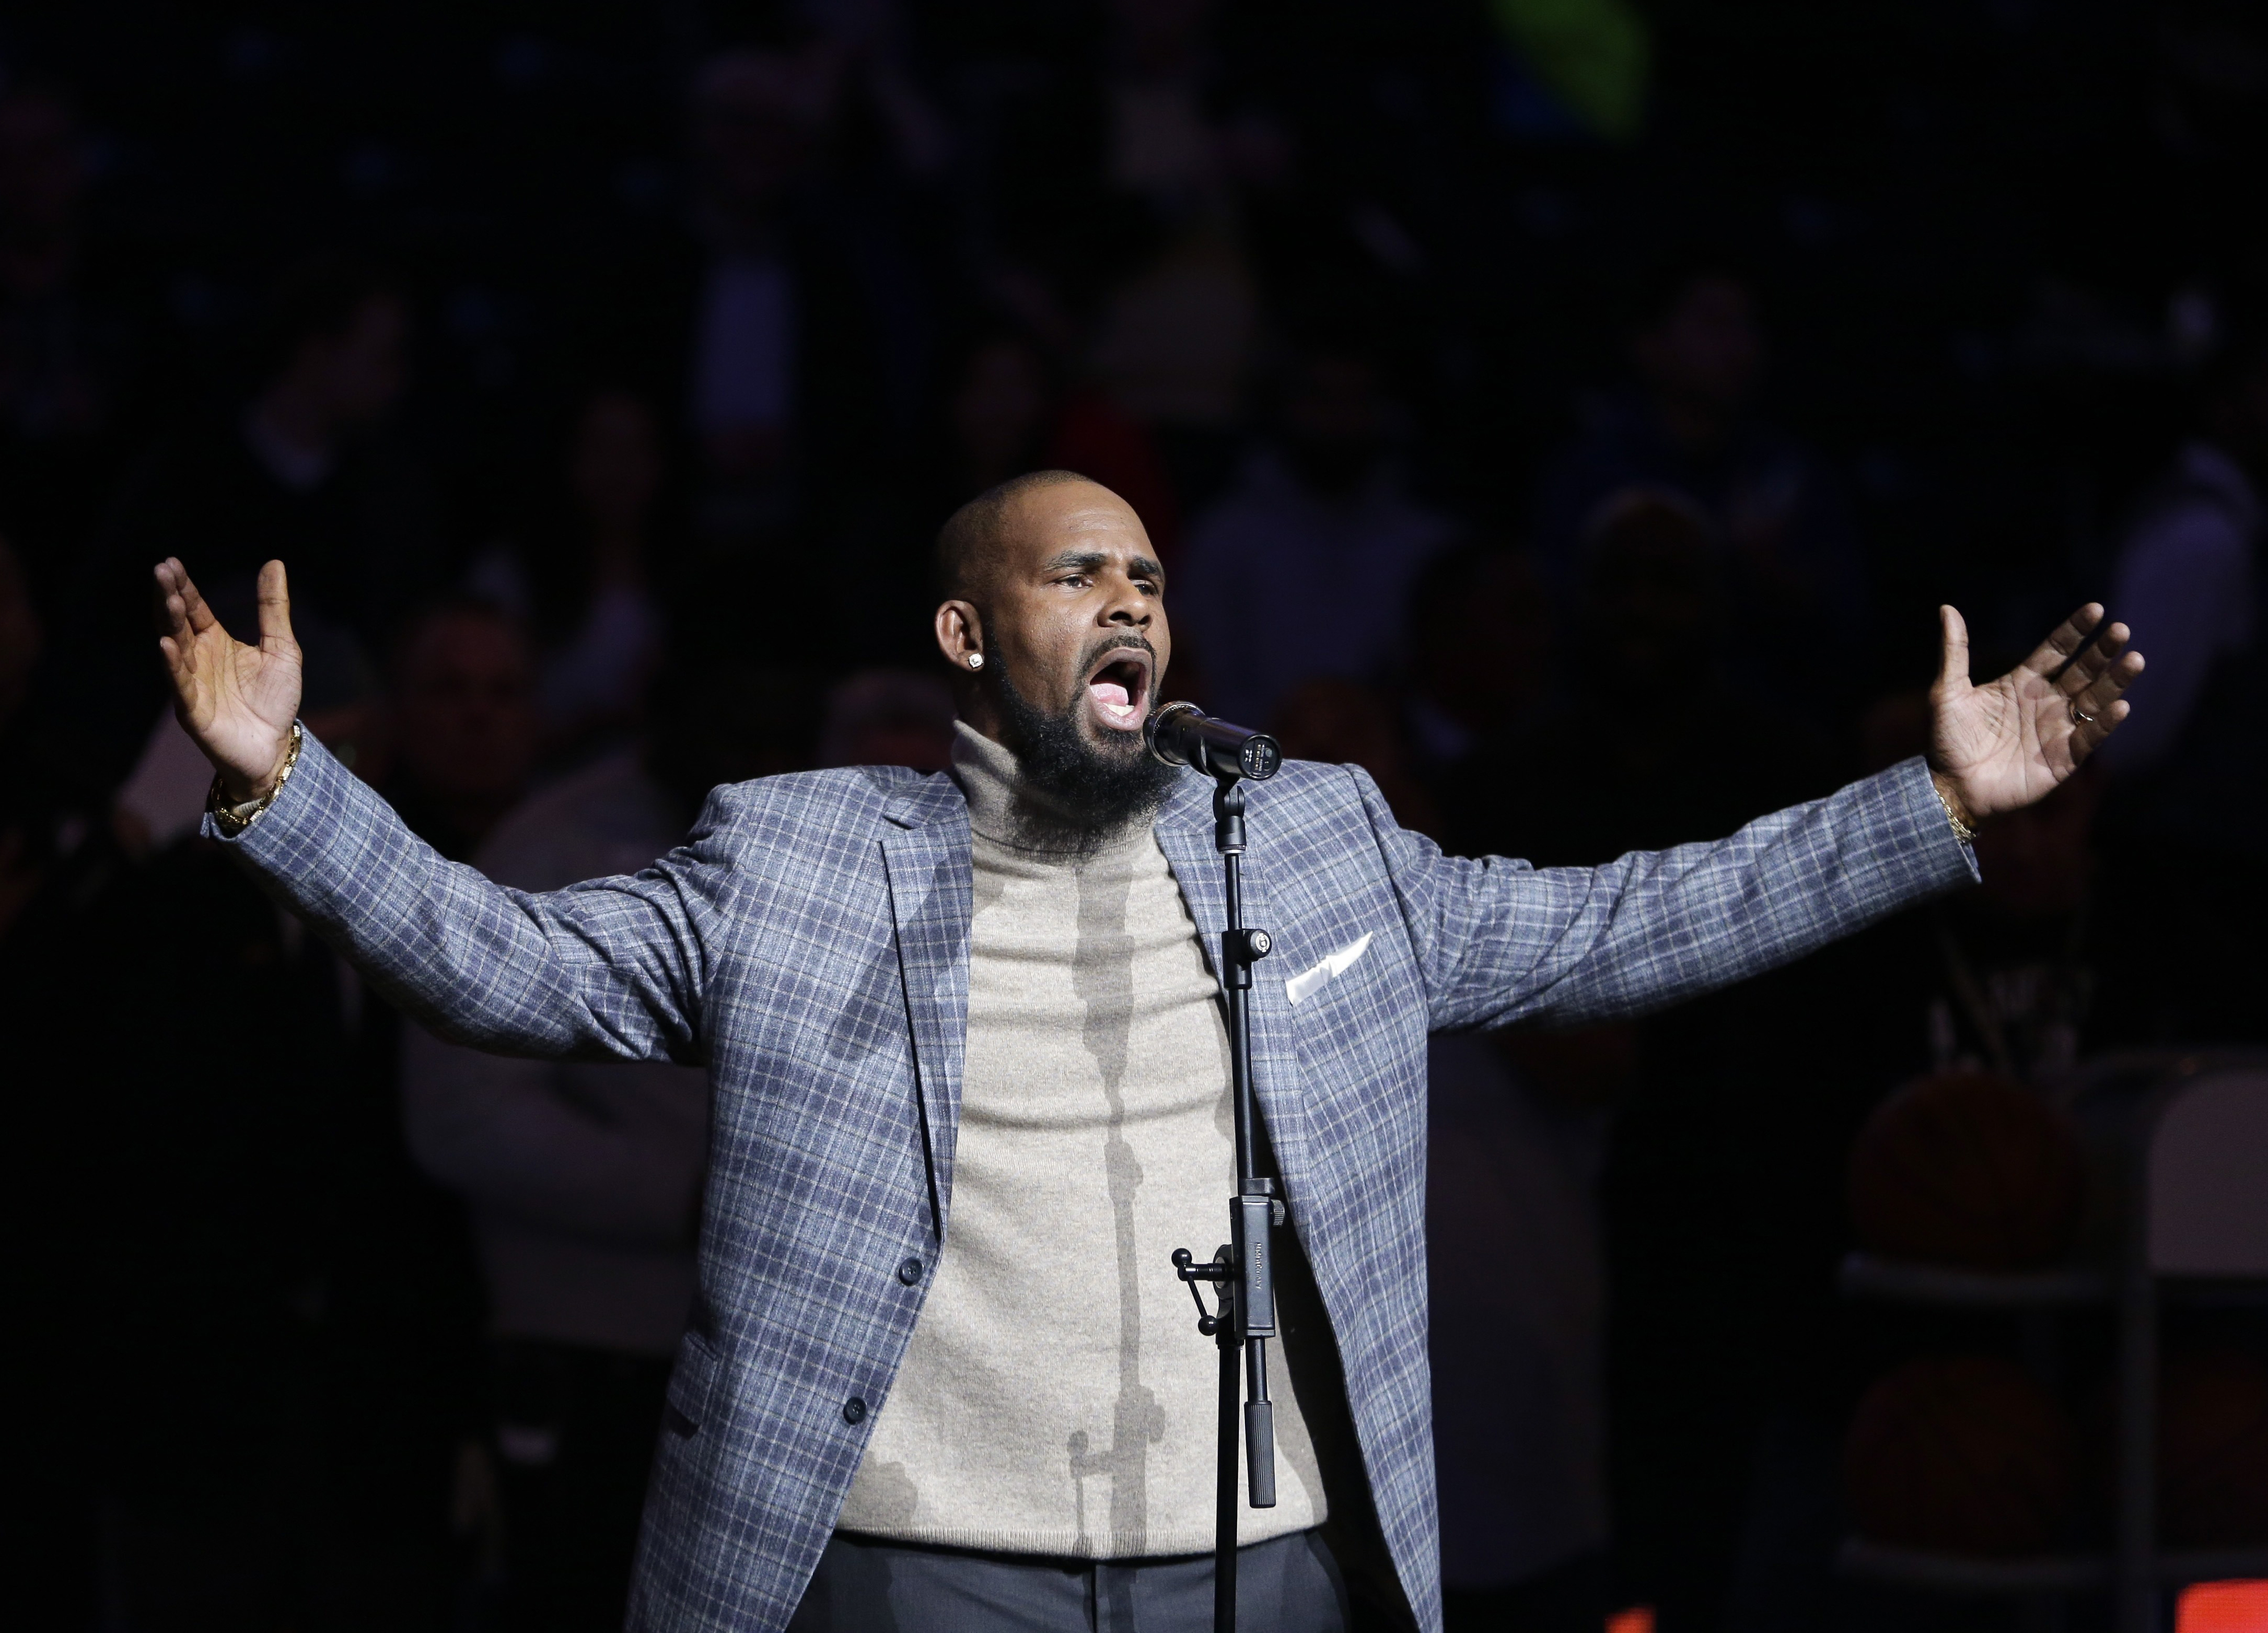 Spotify removes r kelly music from playlists irish examiner r kelly frank franklin iiap malvernweather Images